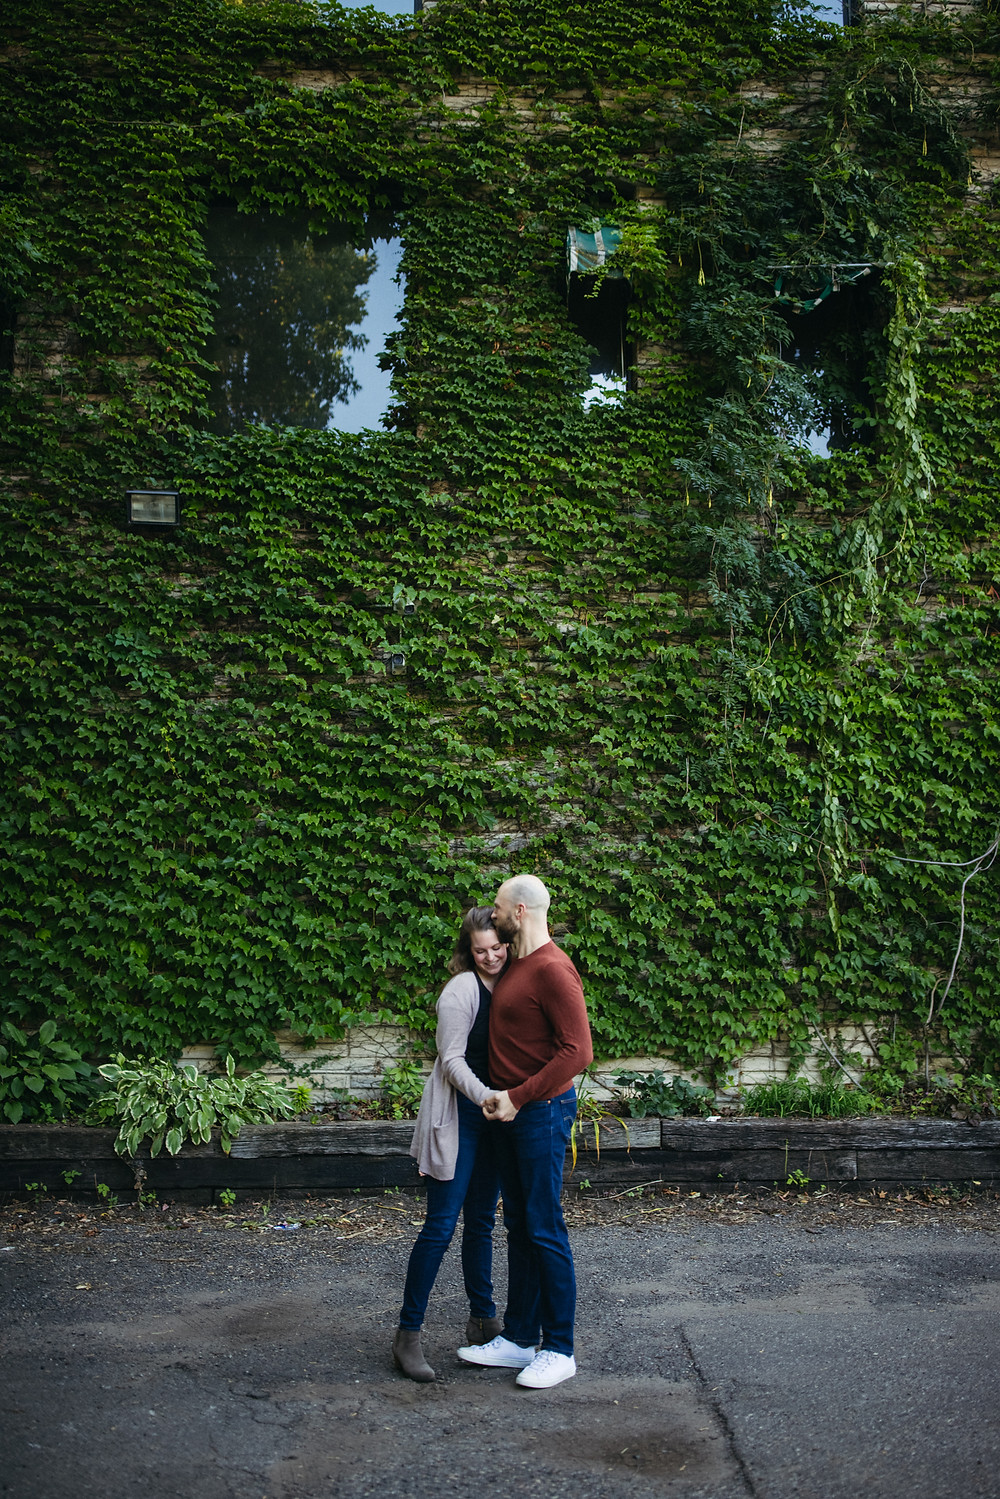 Engagement and wedding photographer St.Paul MN